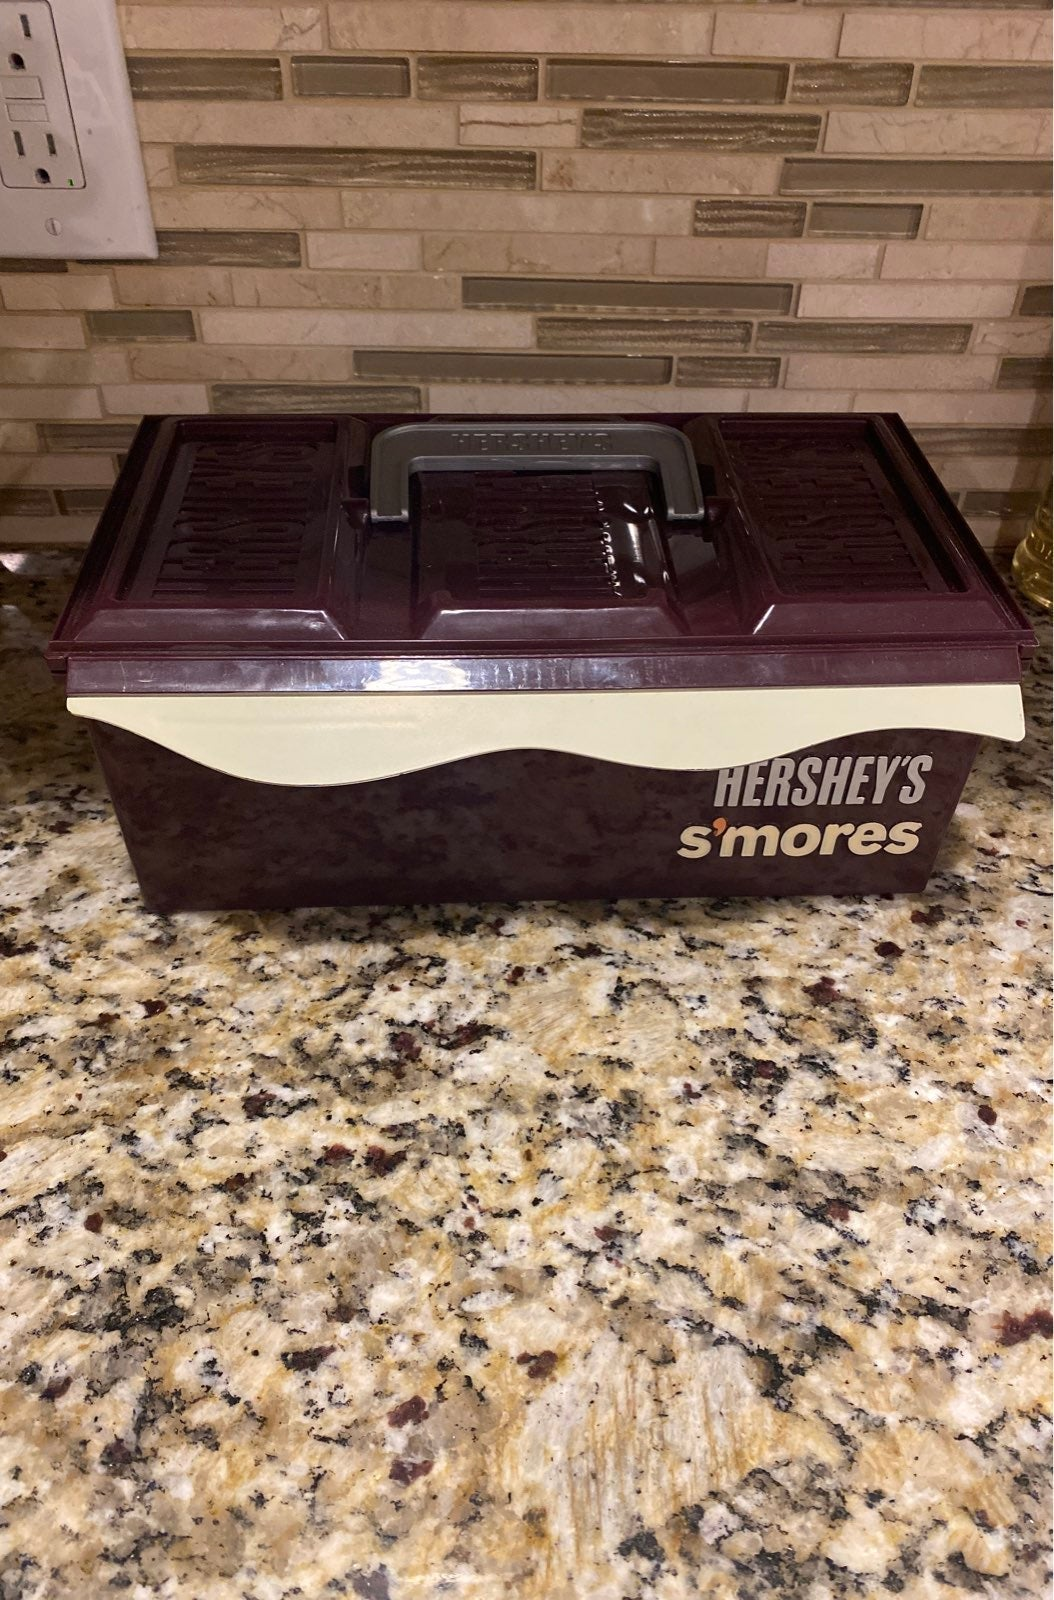 Hershey smores caddy